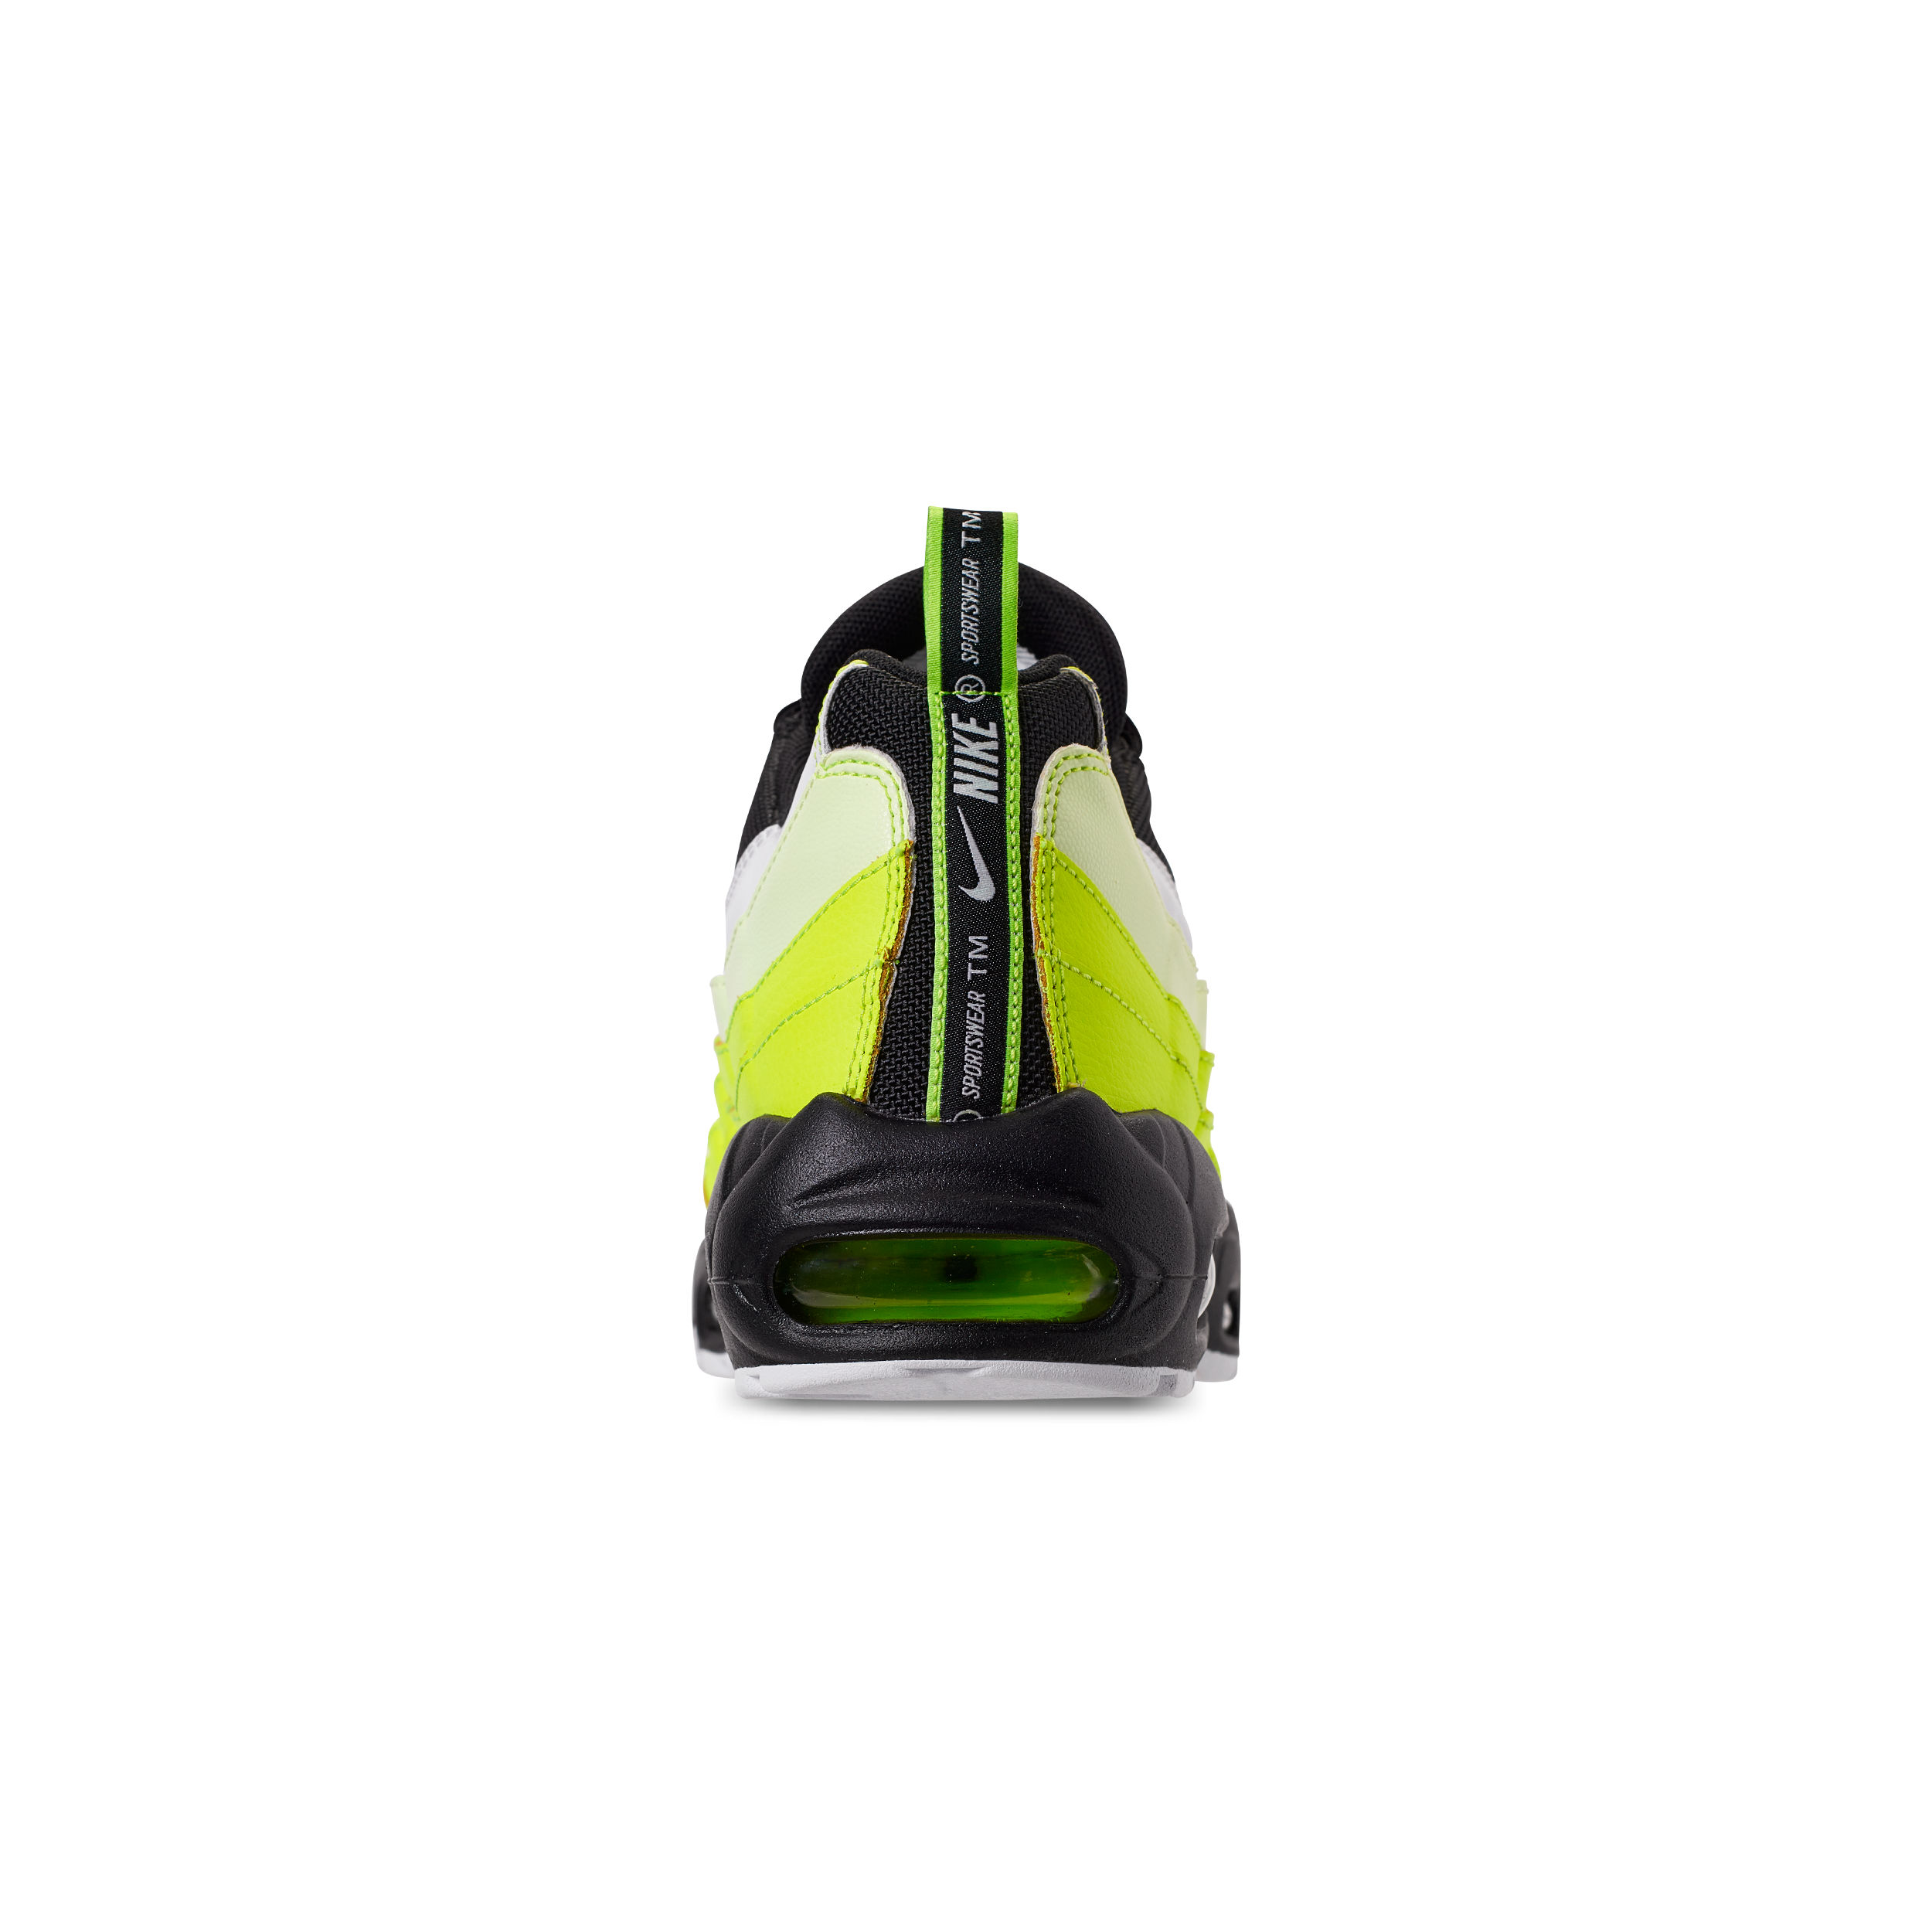 outlet store 7d0cf 92bb6 NIKE AIR MAX 95 PREMIUM VOLT   BLACK-VOLT GLOW-BARELY VOLT OFF WHITE 4